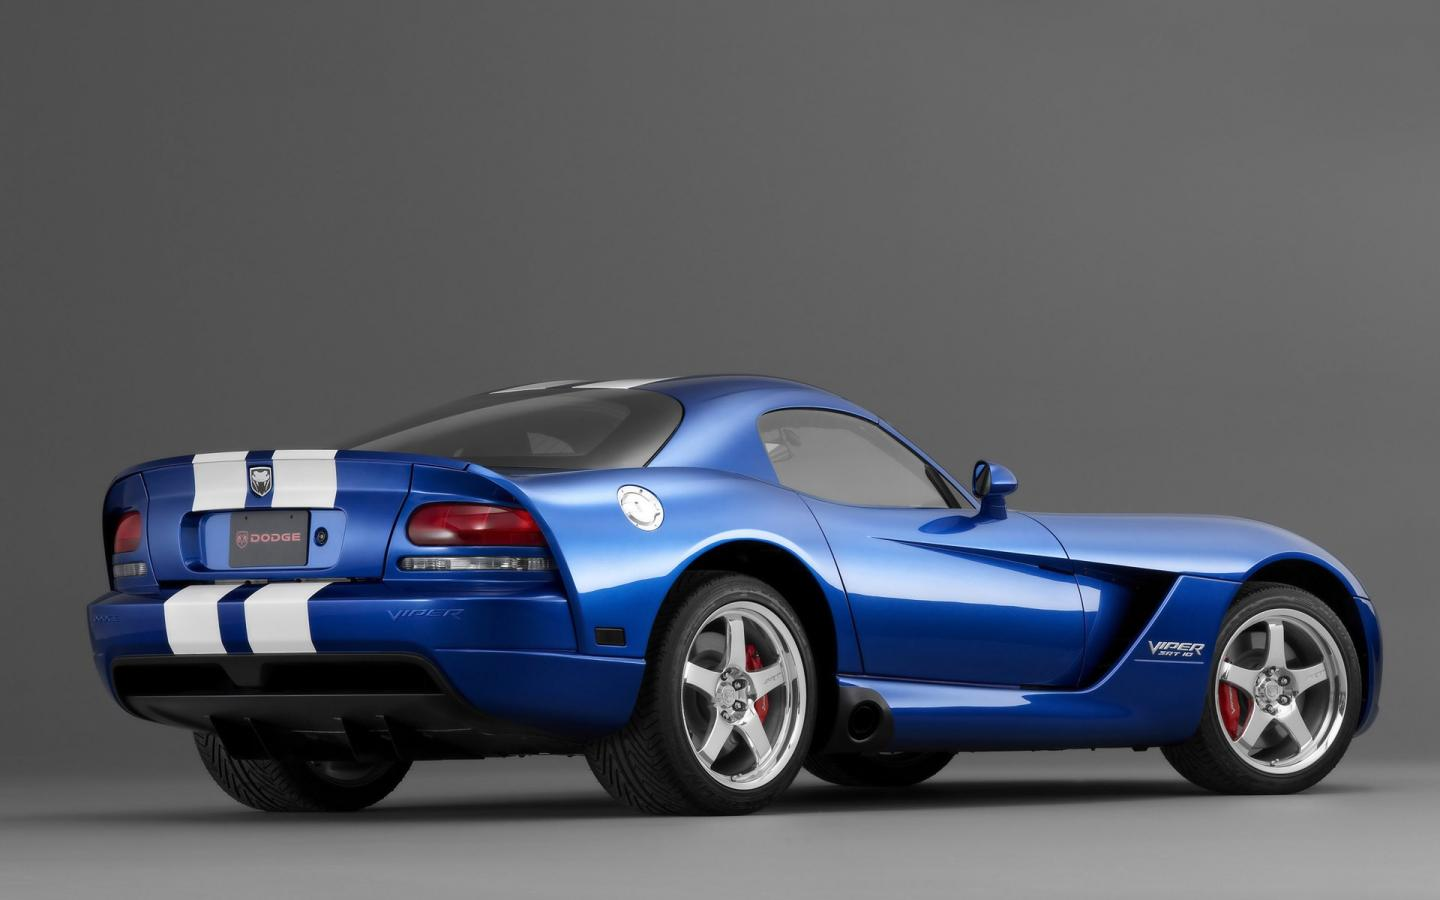 2006 Dodge Viper Srt10 Ra Studio 1440x900